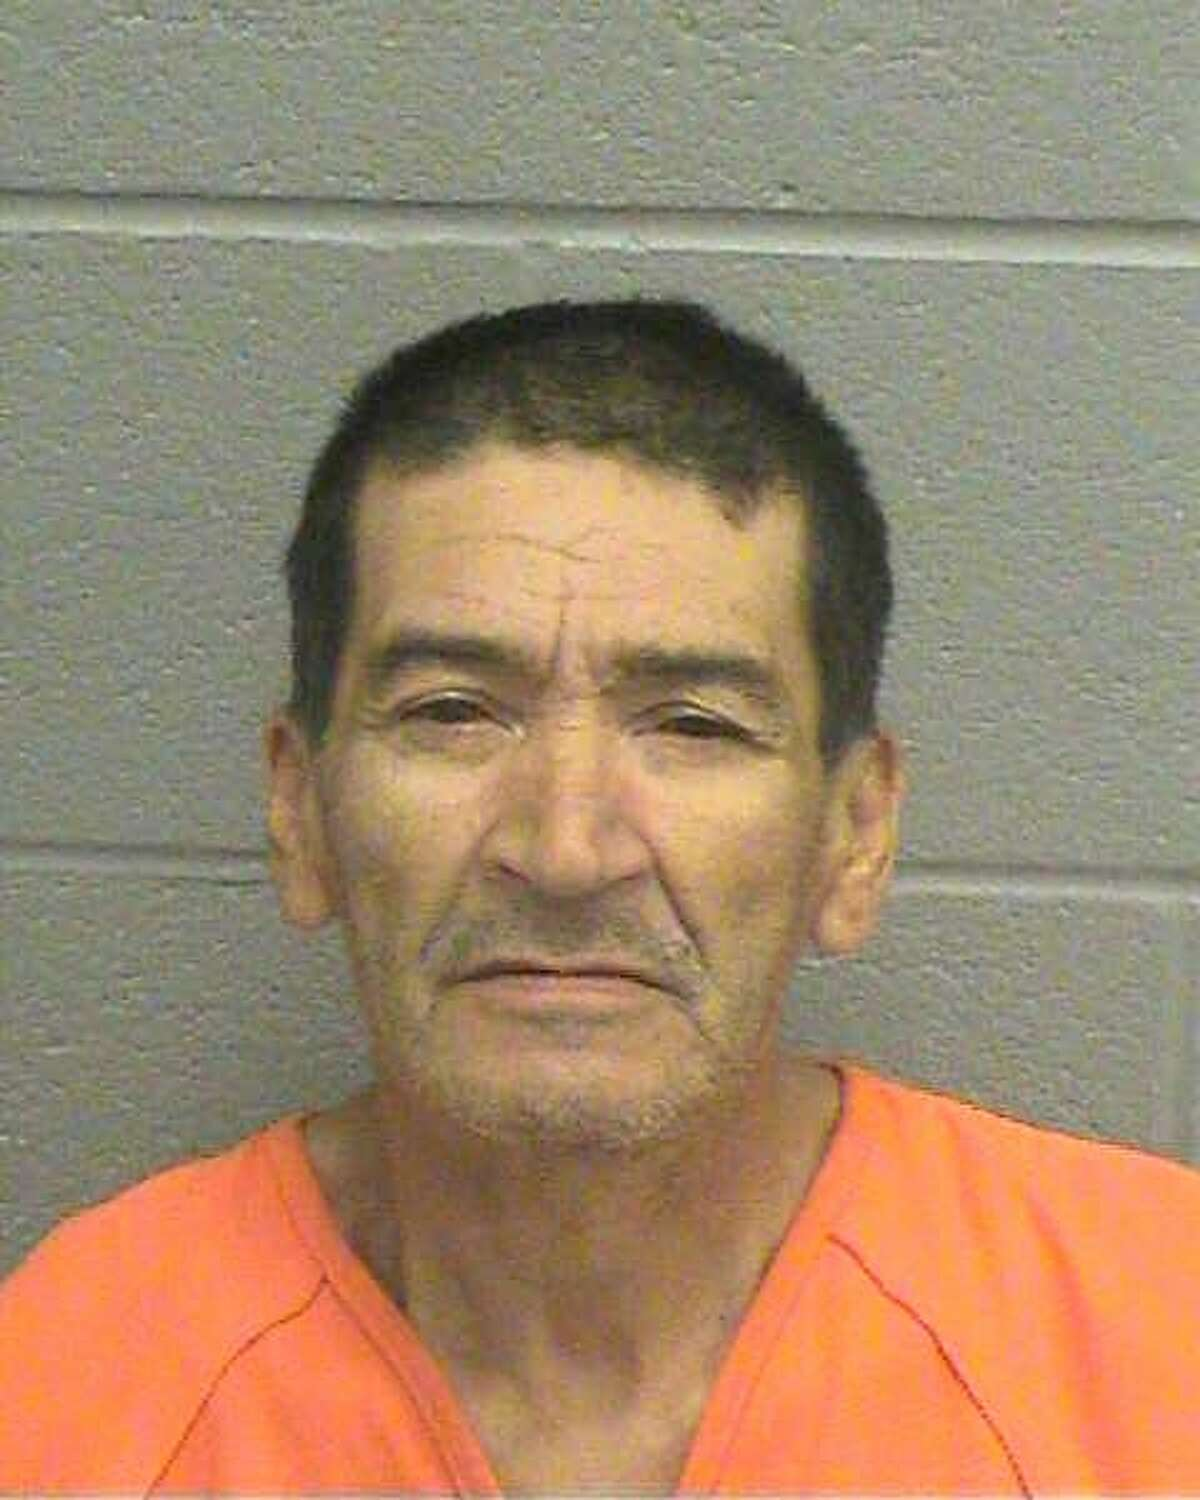 Alejandro Marcell Ramirez is being sought in connection with a shooting death, according to a press release from the city's spokeswoman.